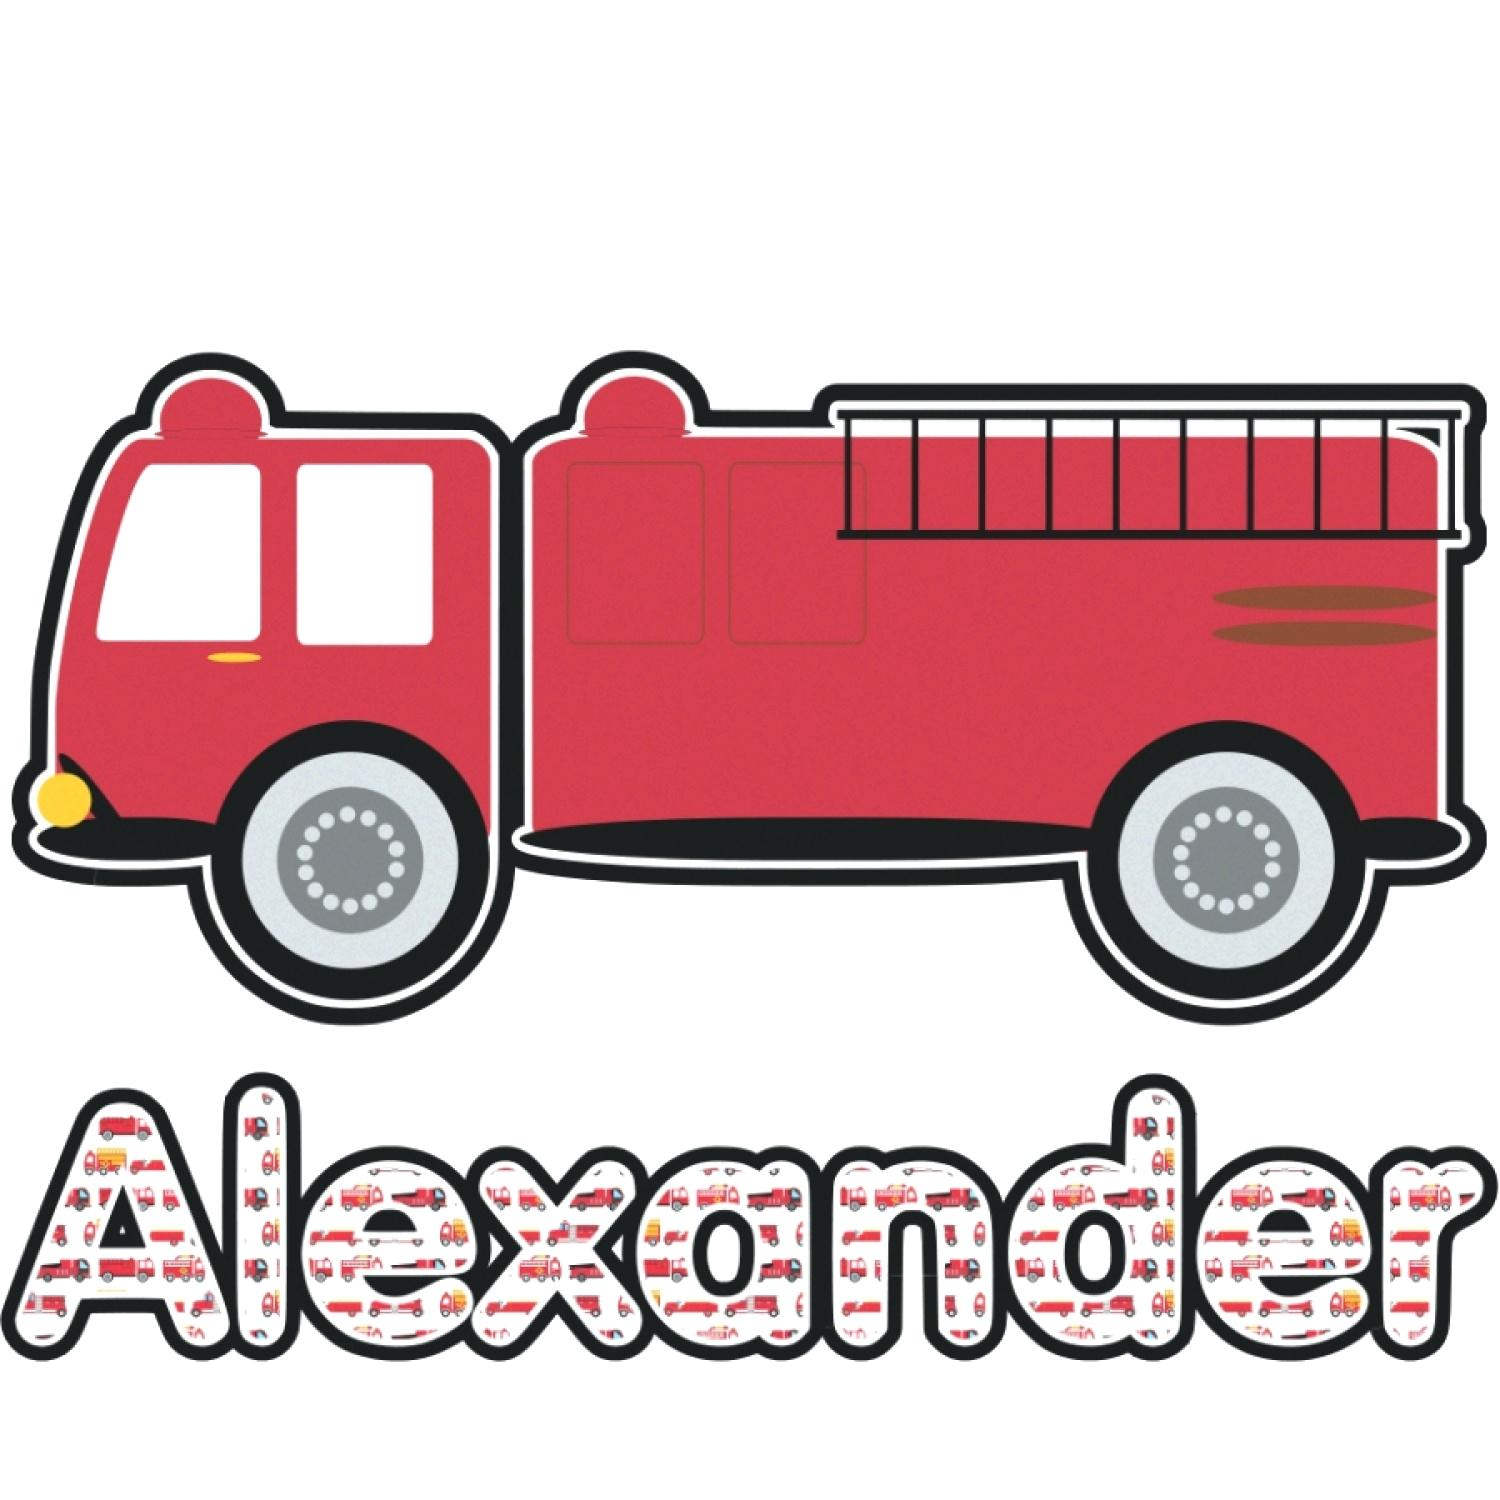 1500x1500 Fire Engine Wall Decals Fire Engine Decals Images Reverse Search